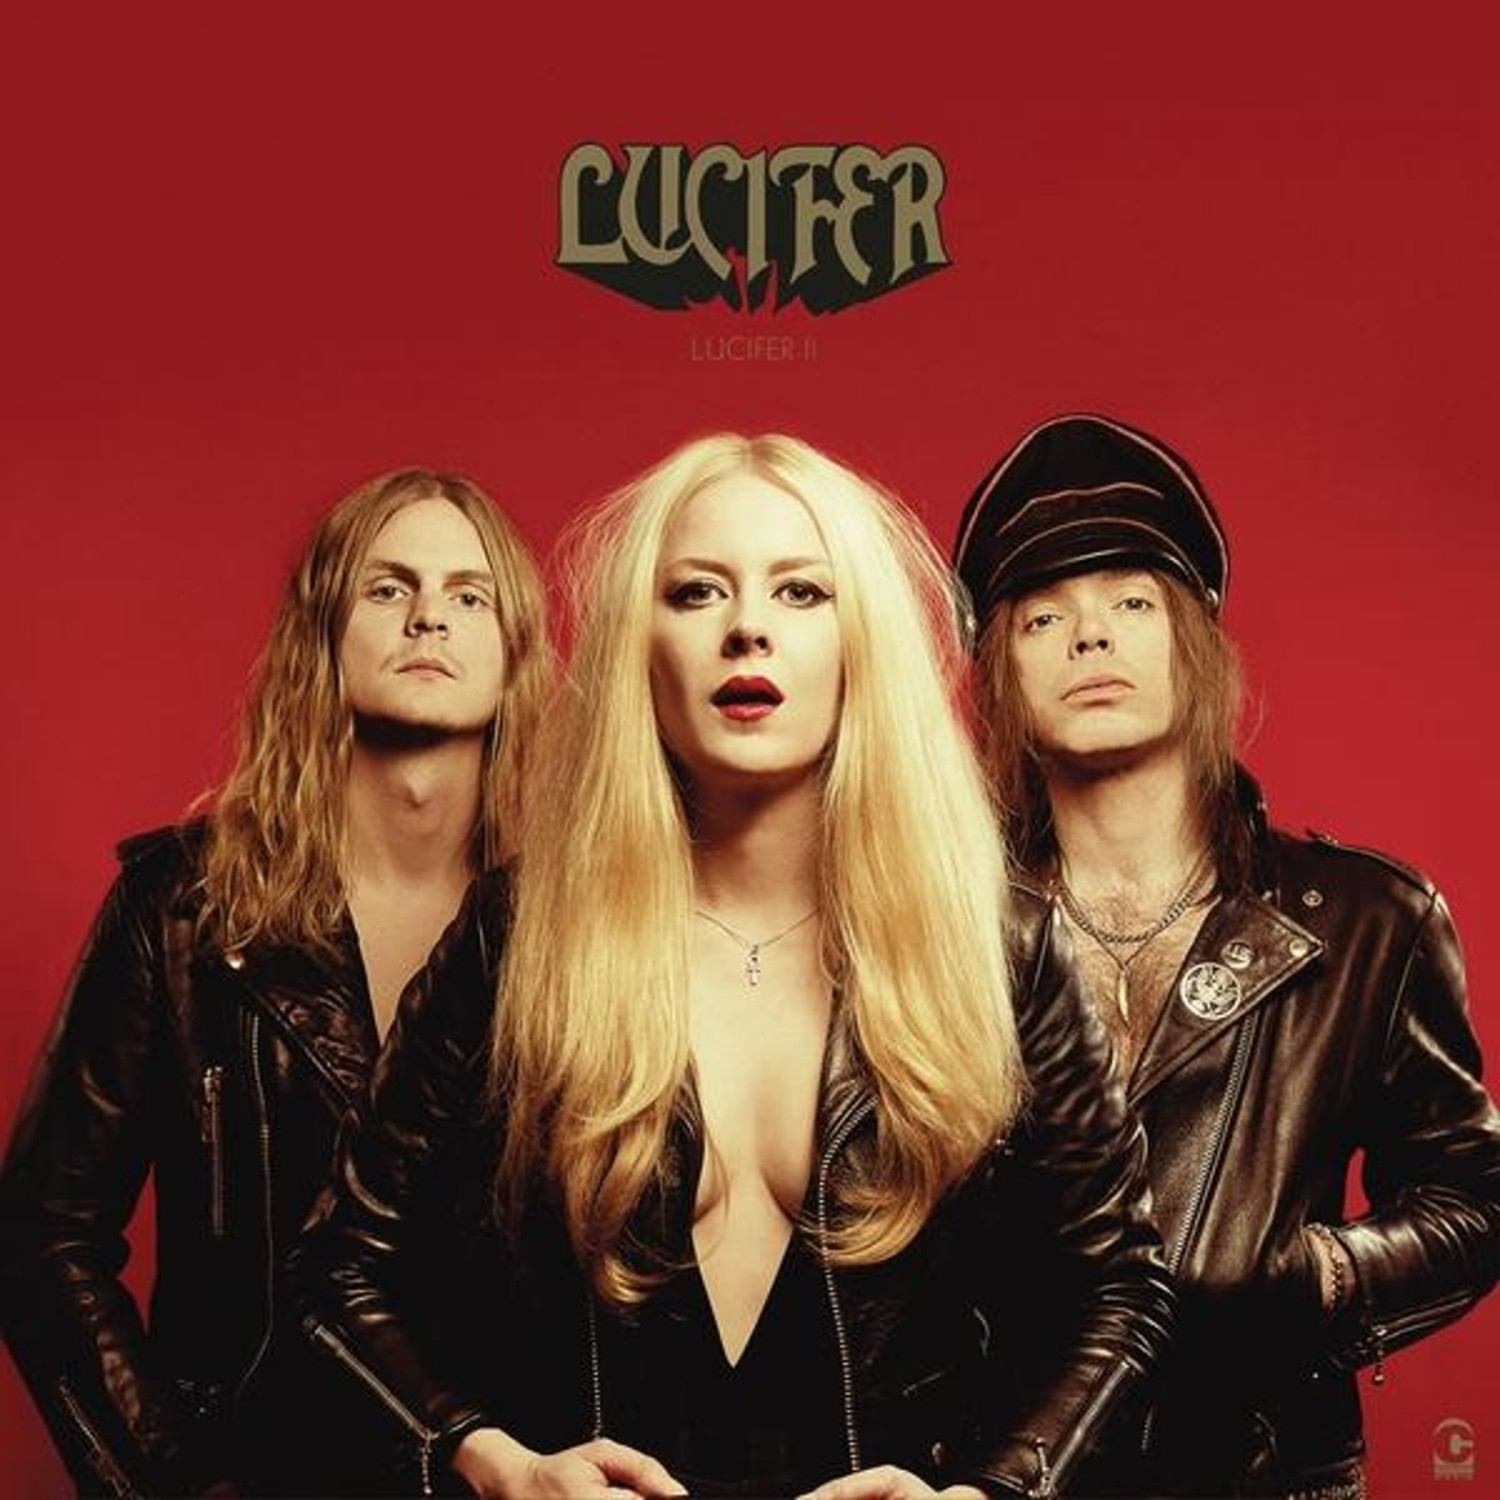 Lucifer - Lucifer II (CD)